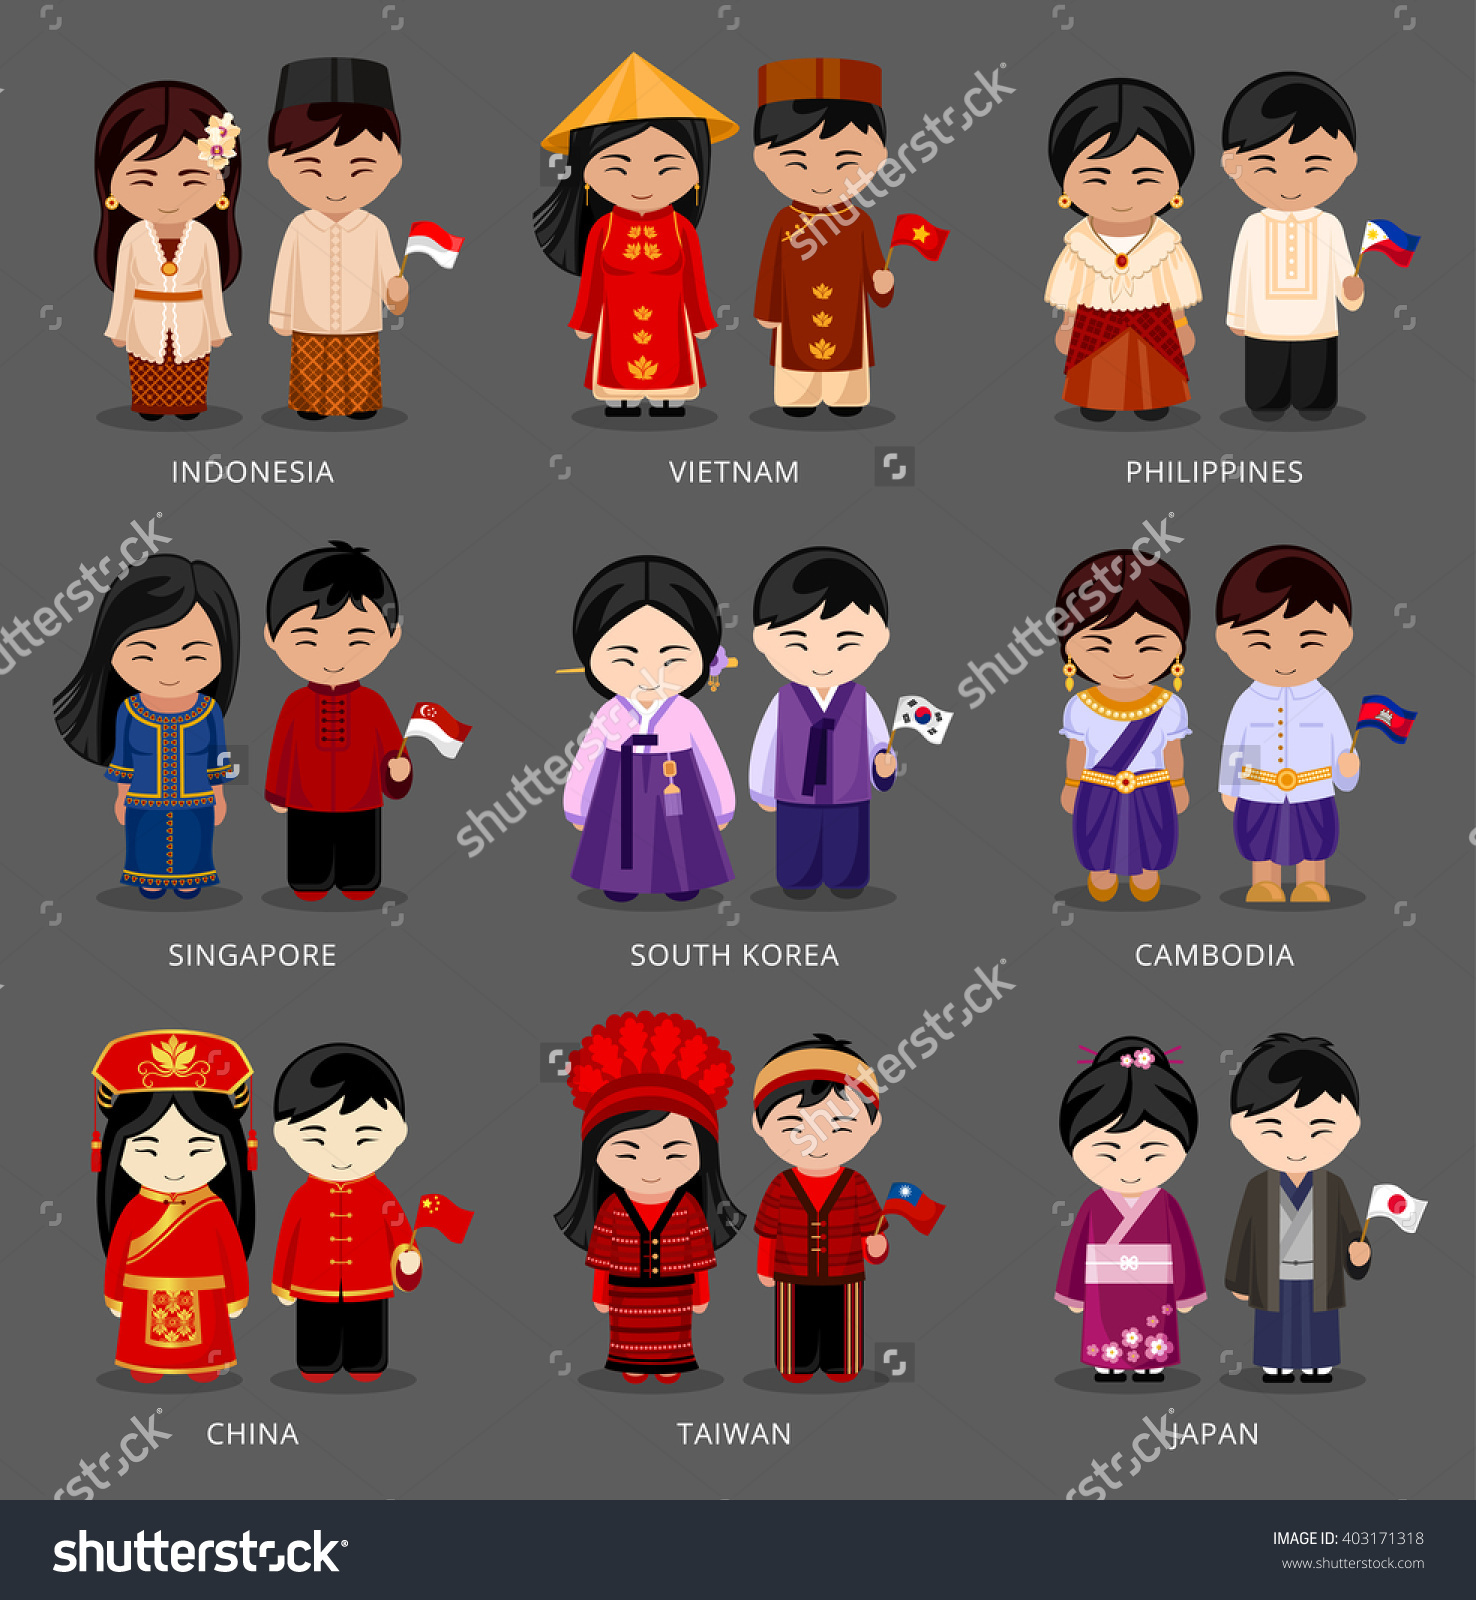 Phillipines clipart japanese boy Pairs Set in  different